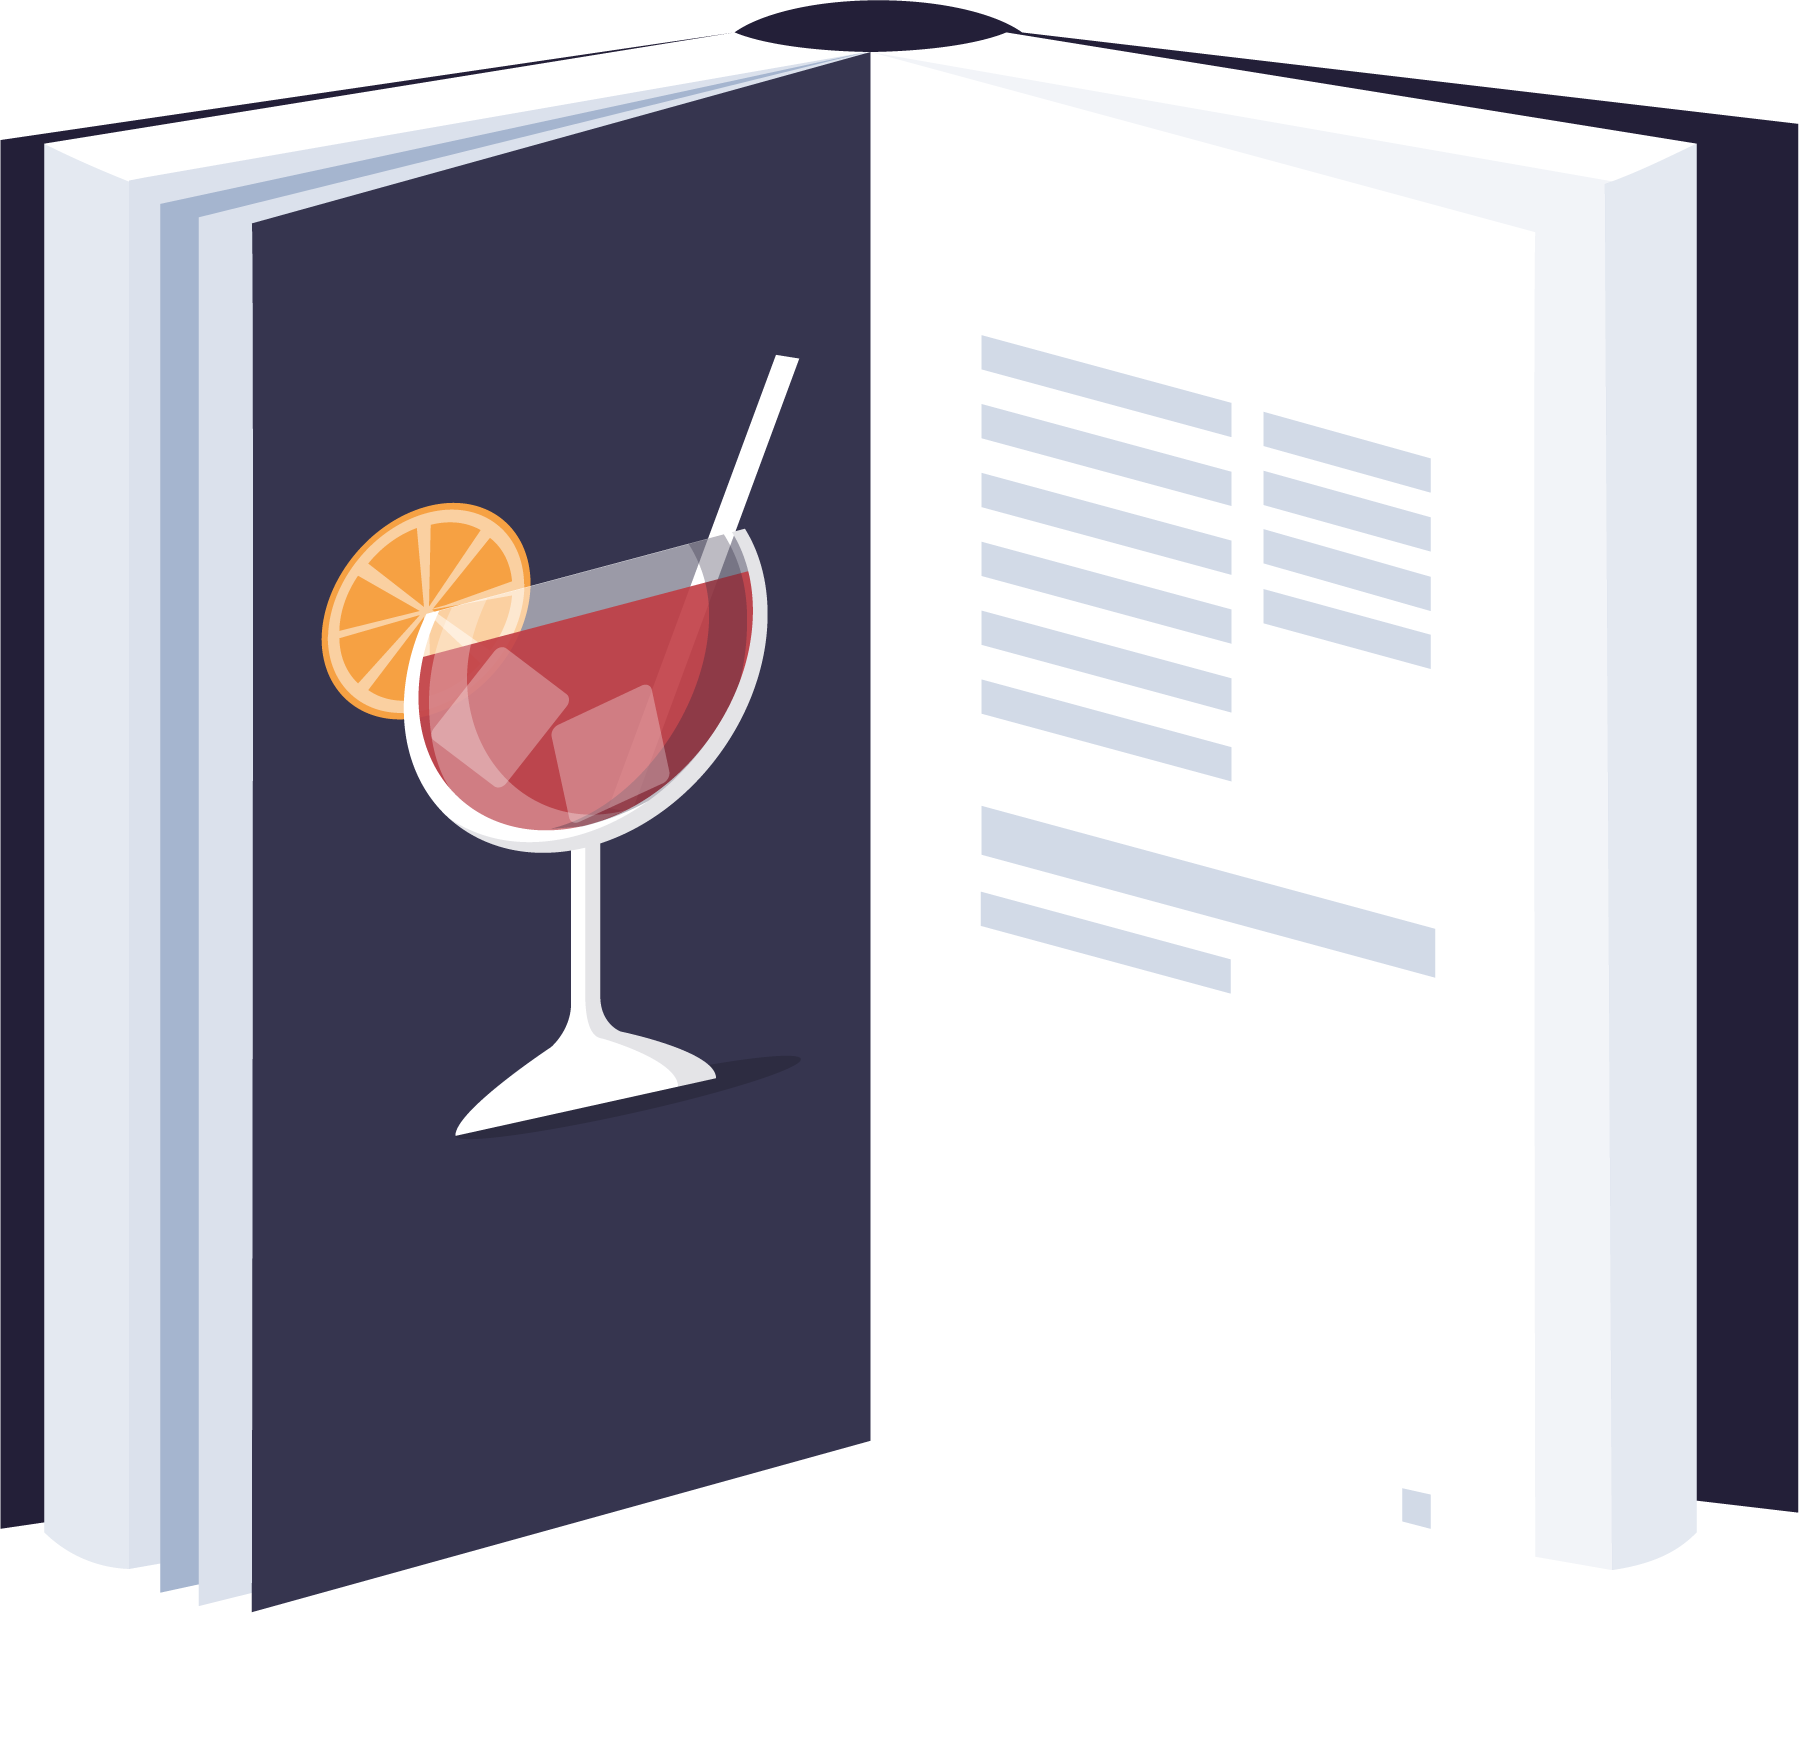 Illustration of an open cocktail book